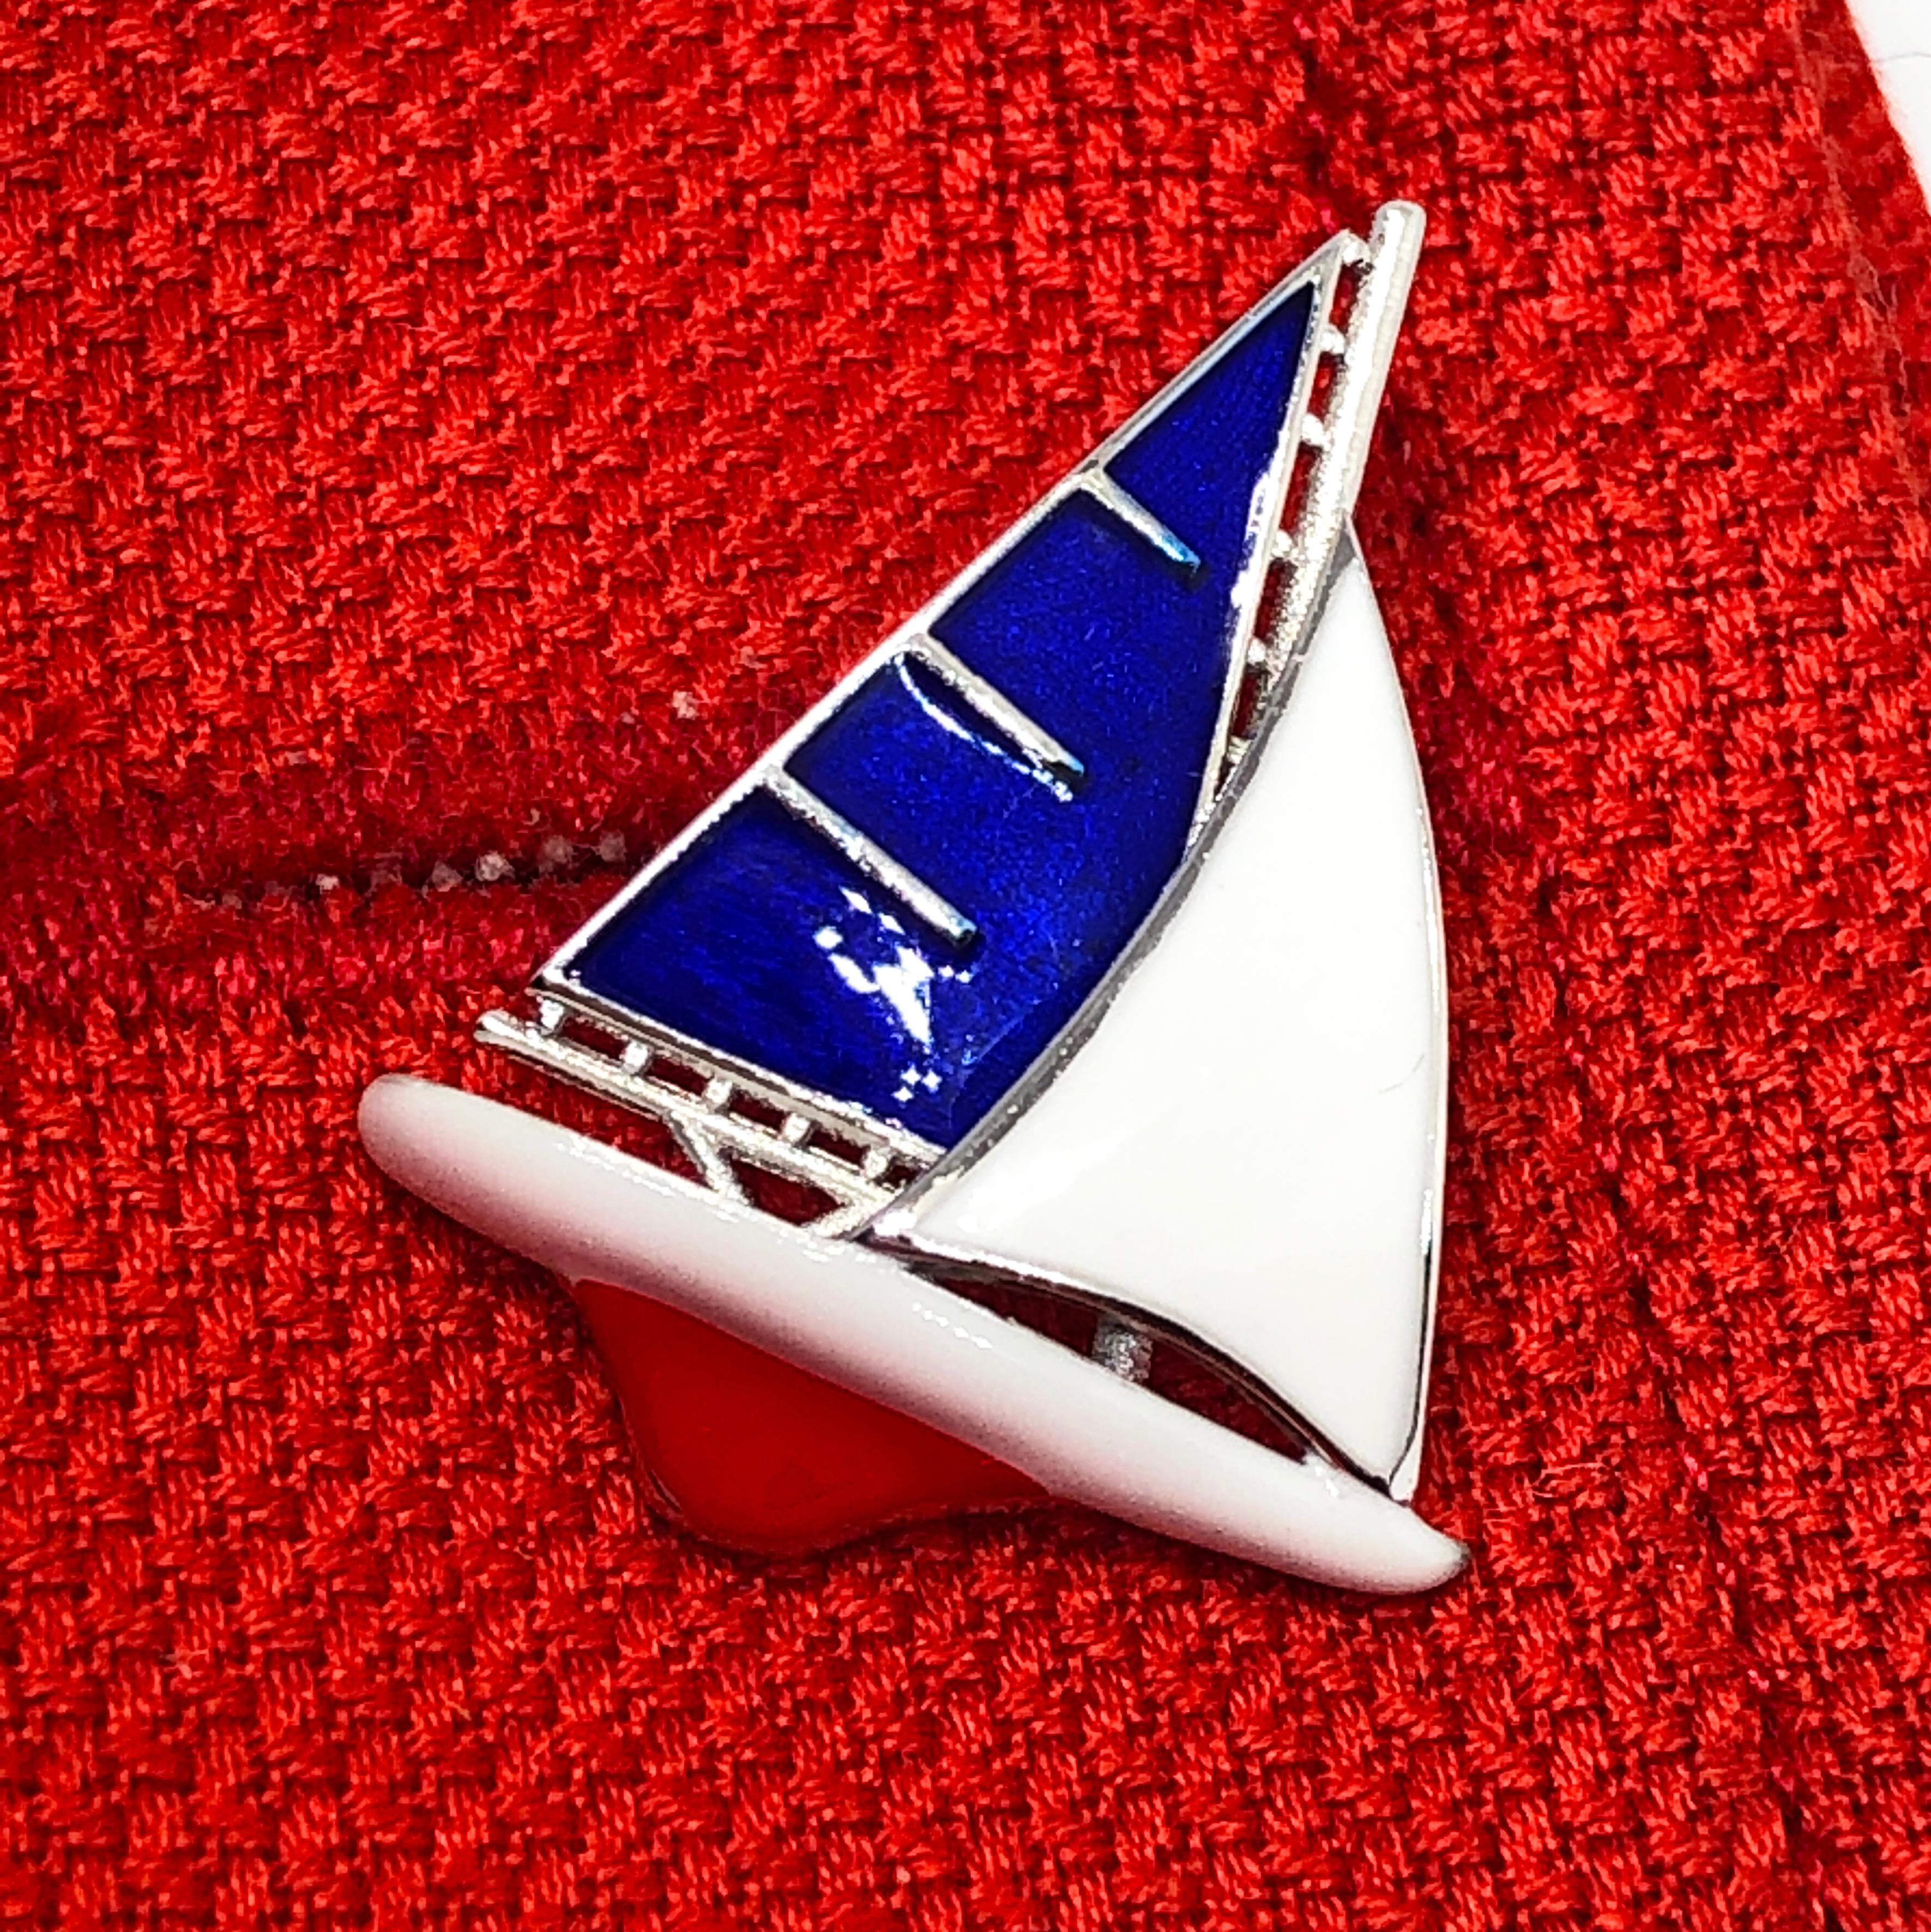 Sterling Silver and Blue Enamel Yacht or Sailboat Bar Cufflinks